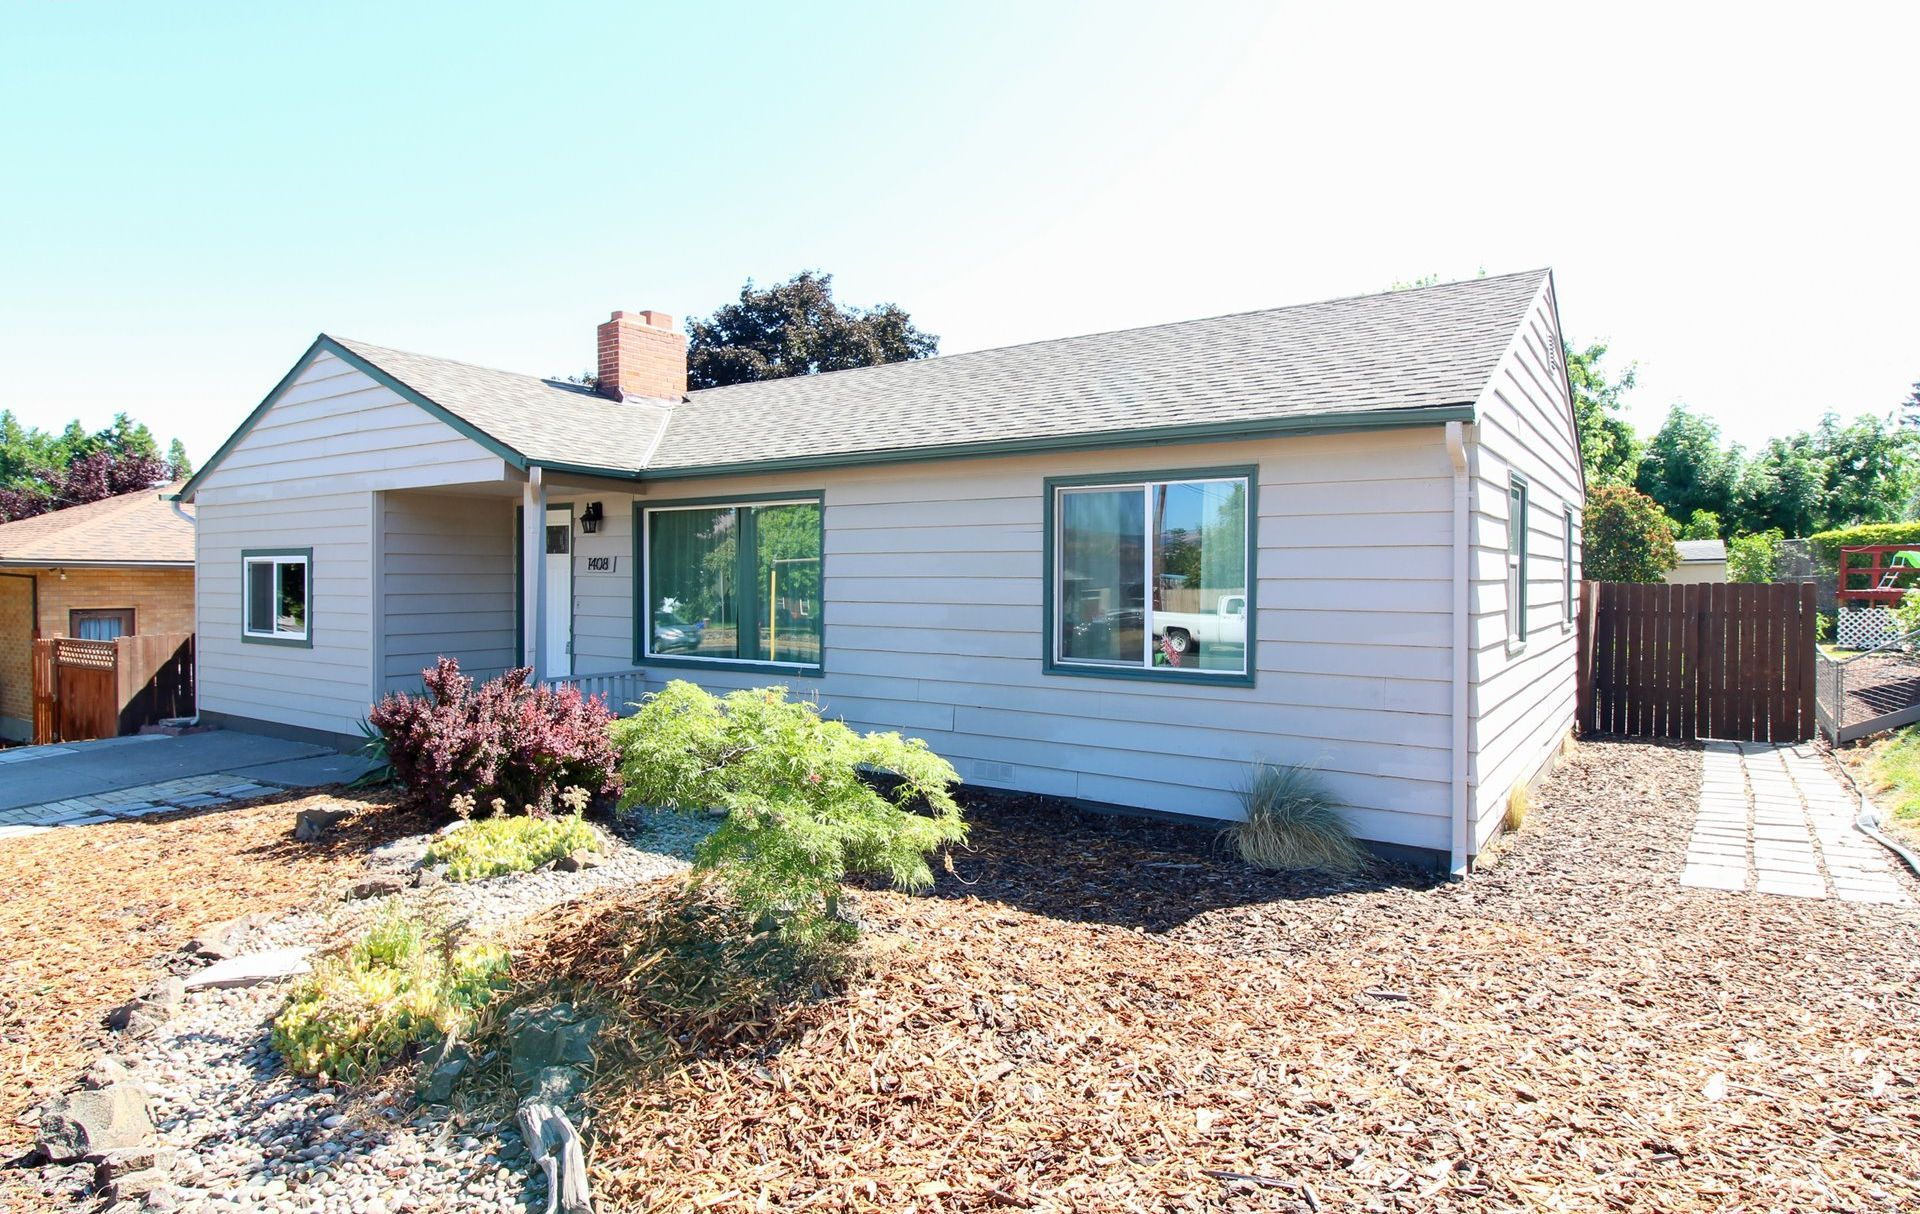 1408 Dry Hollow Rd The Dalles Price Drop